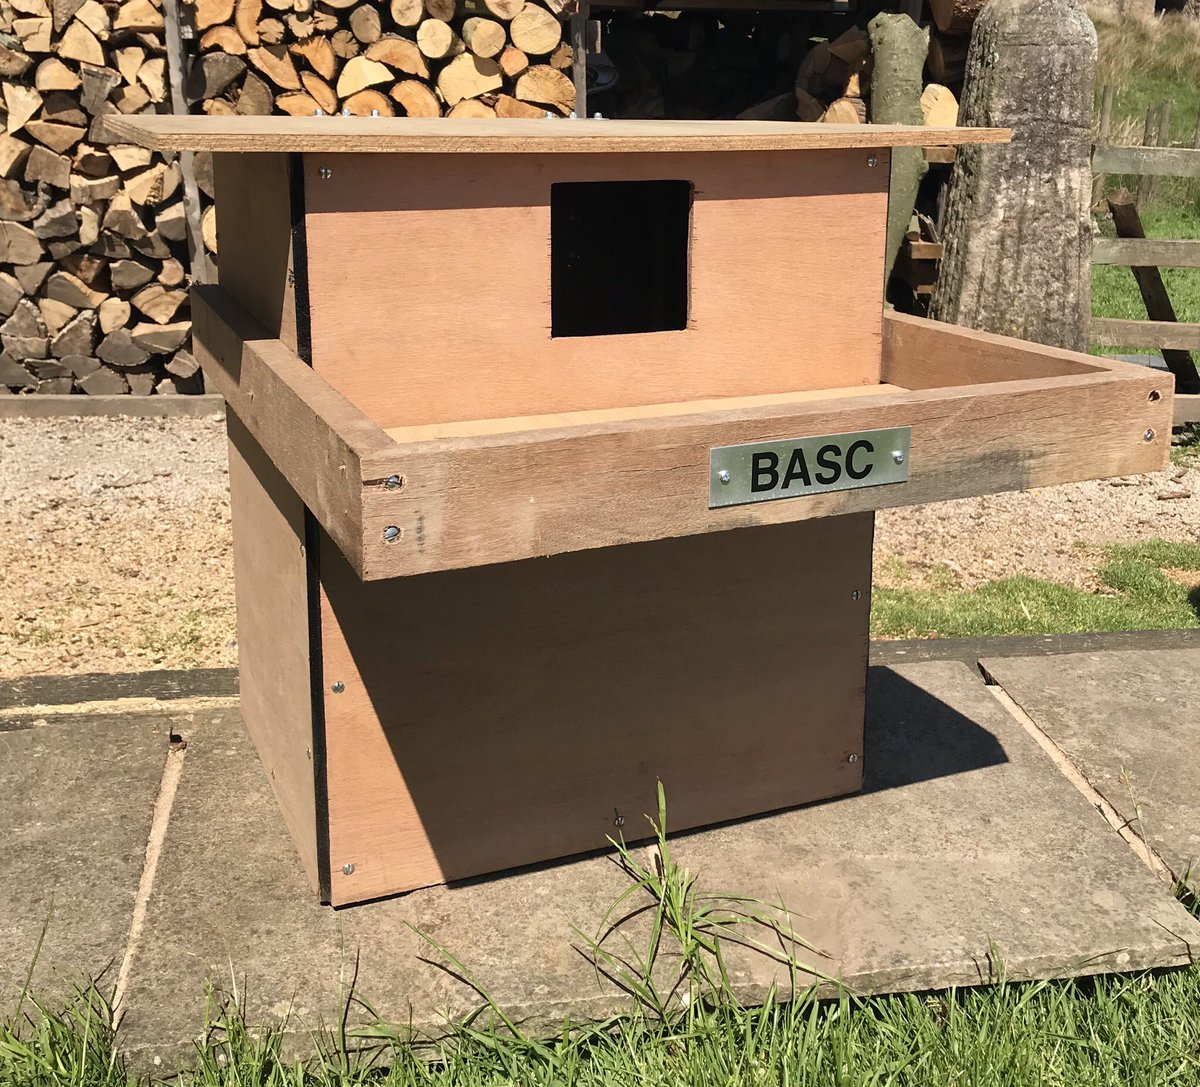 """So whilst """"Wild-Daz"""" or whatever they call themselves are trying to hamper vital conservation work, we've branched out now into Owl boxes @BASCNorth Again, tangible efforts on Shoots helping the full range of species @CountrymansW @ShootingTimes #bascbirdbox"""